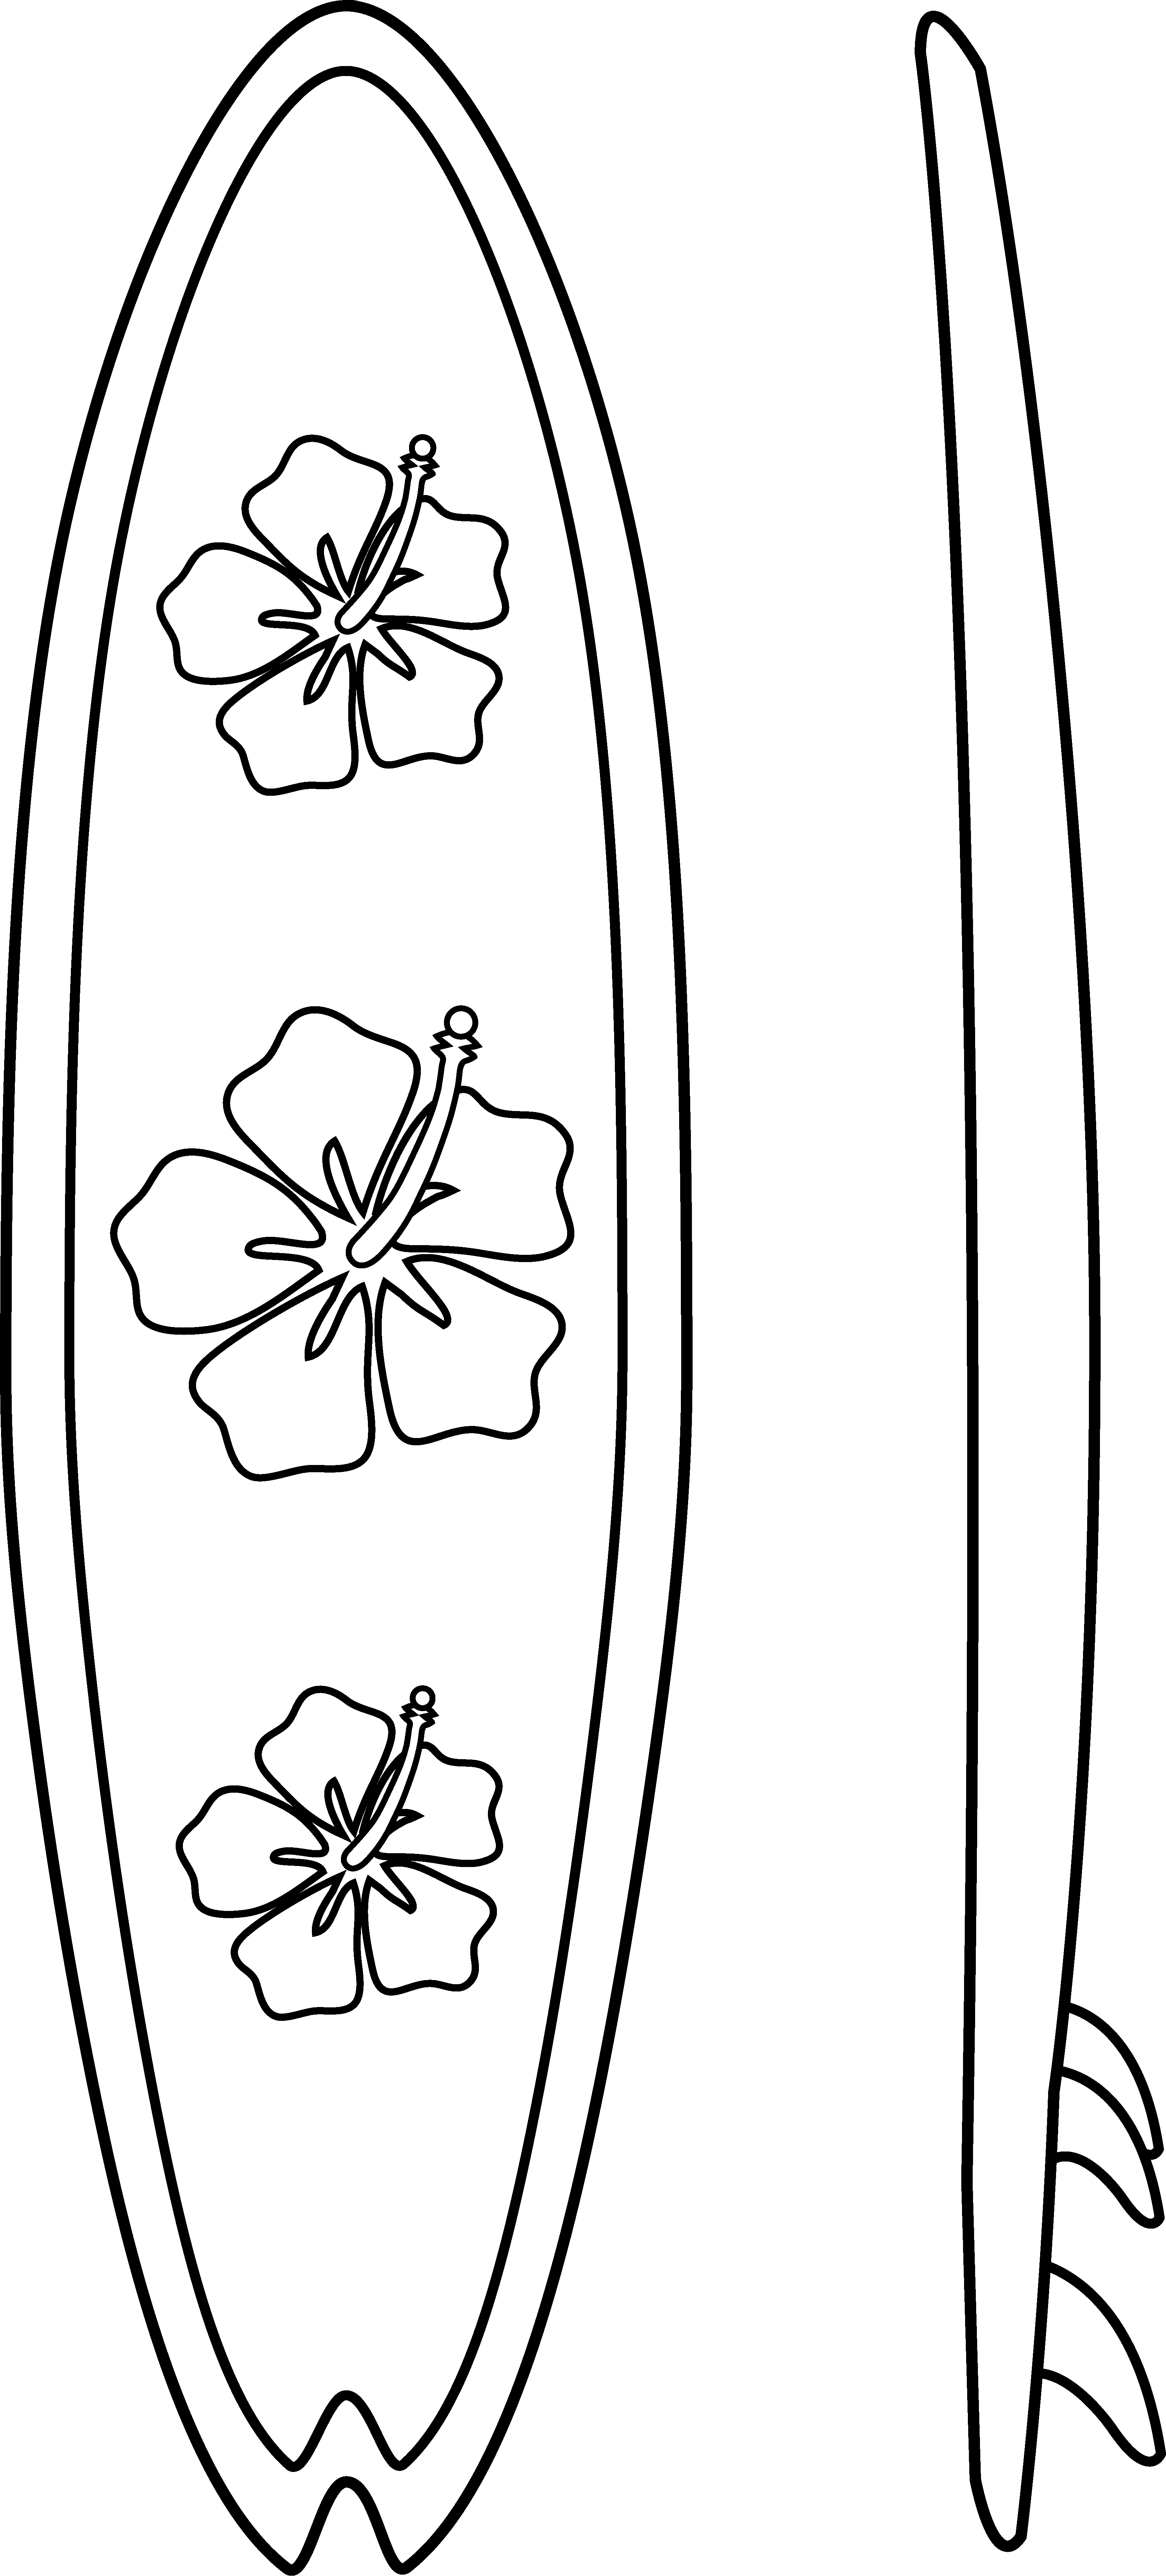 Surfboards Outline